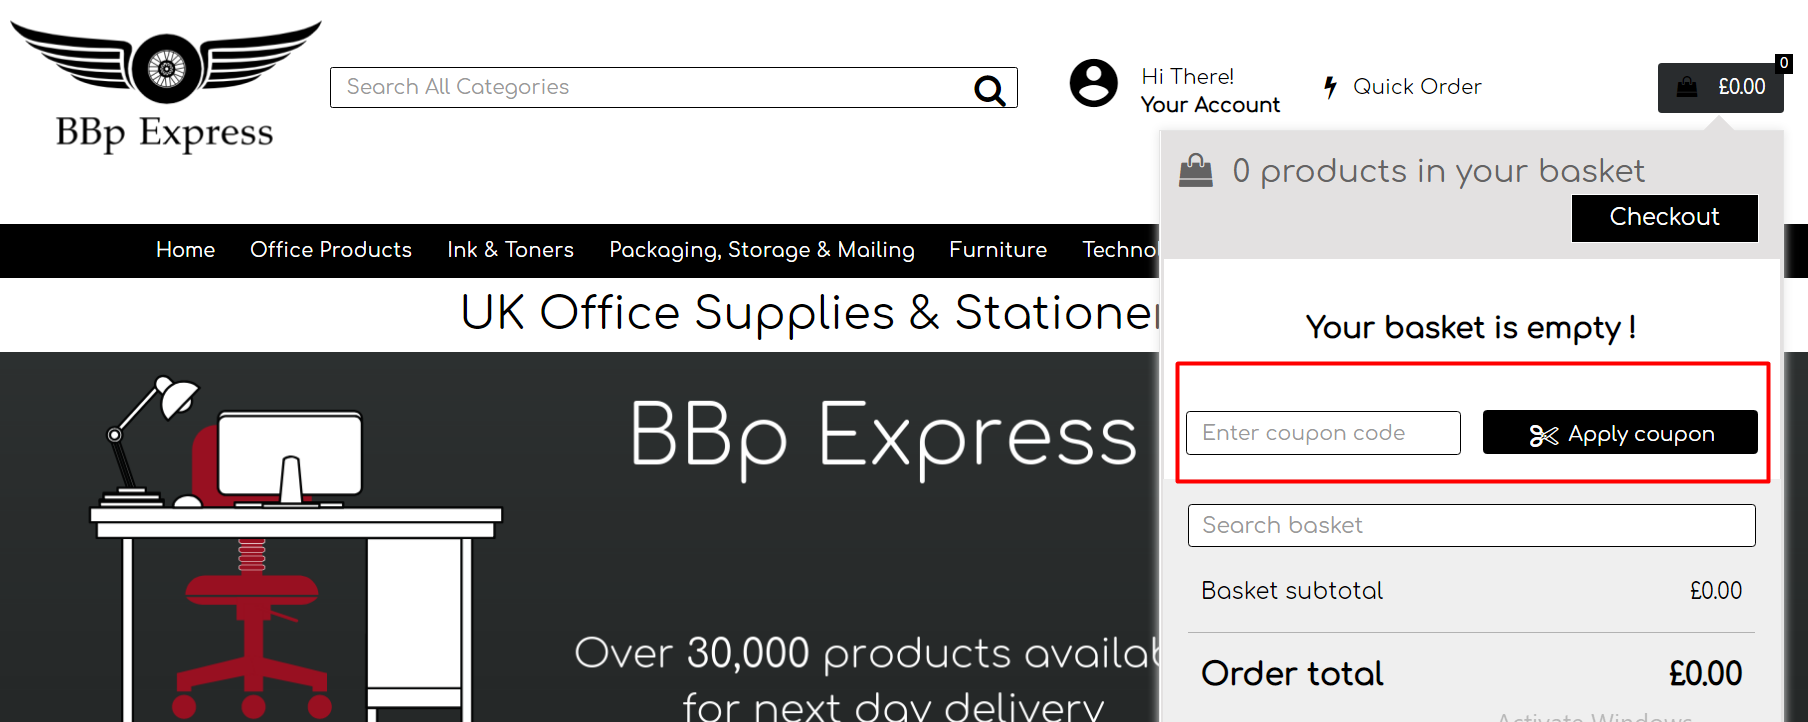 How do I use my BBp Express discount code?